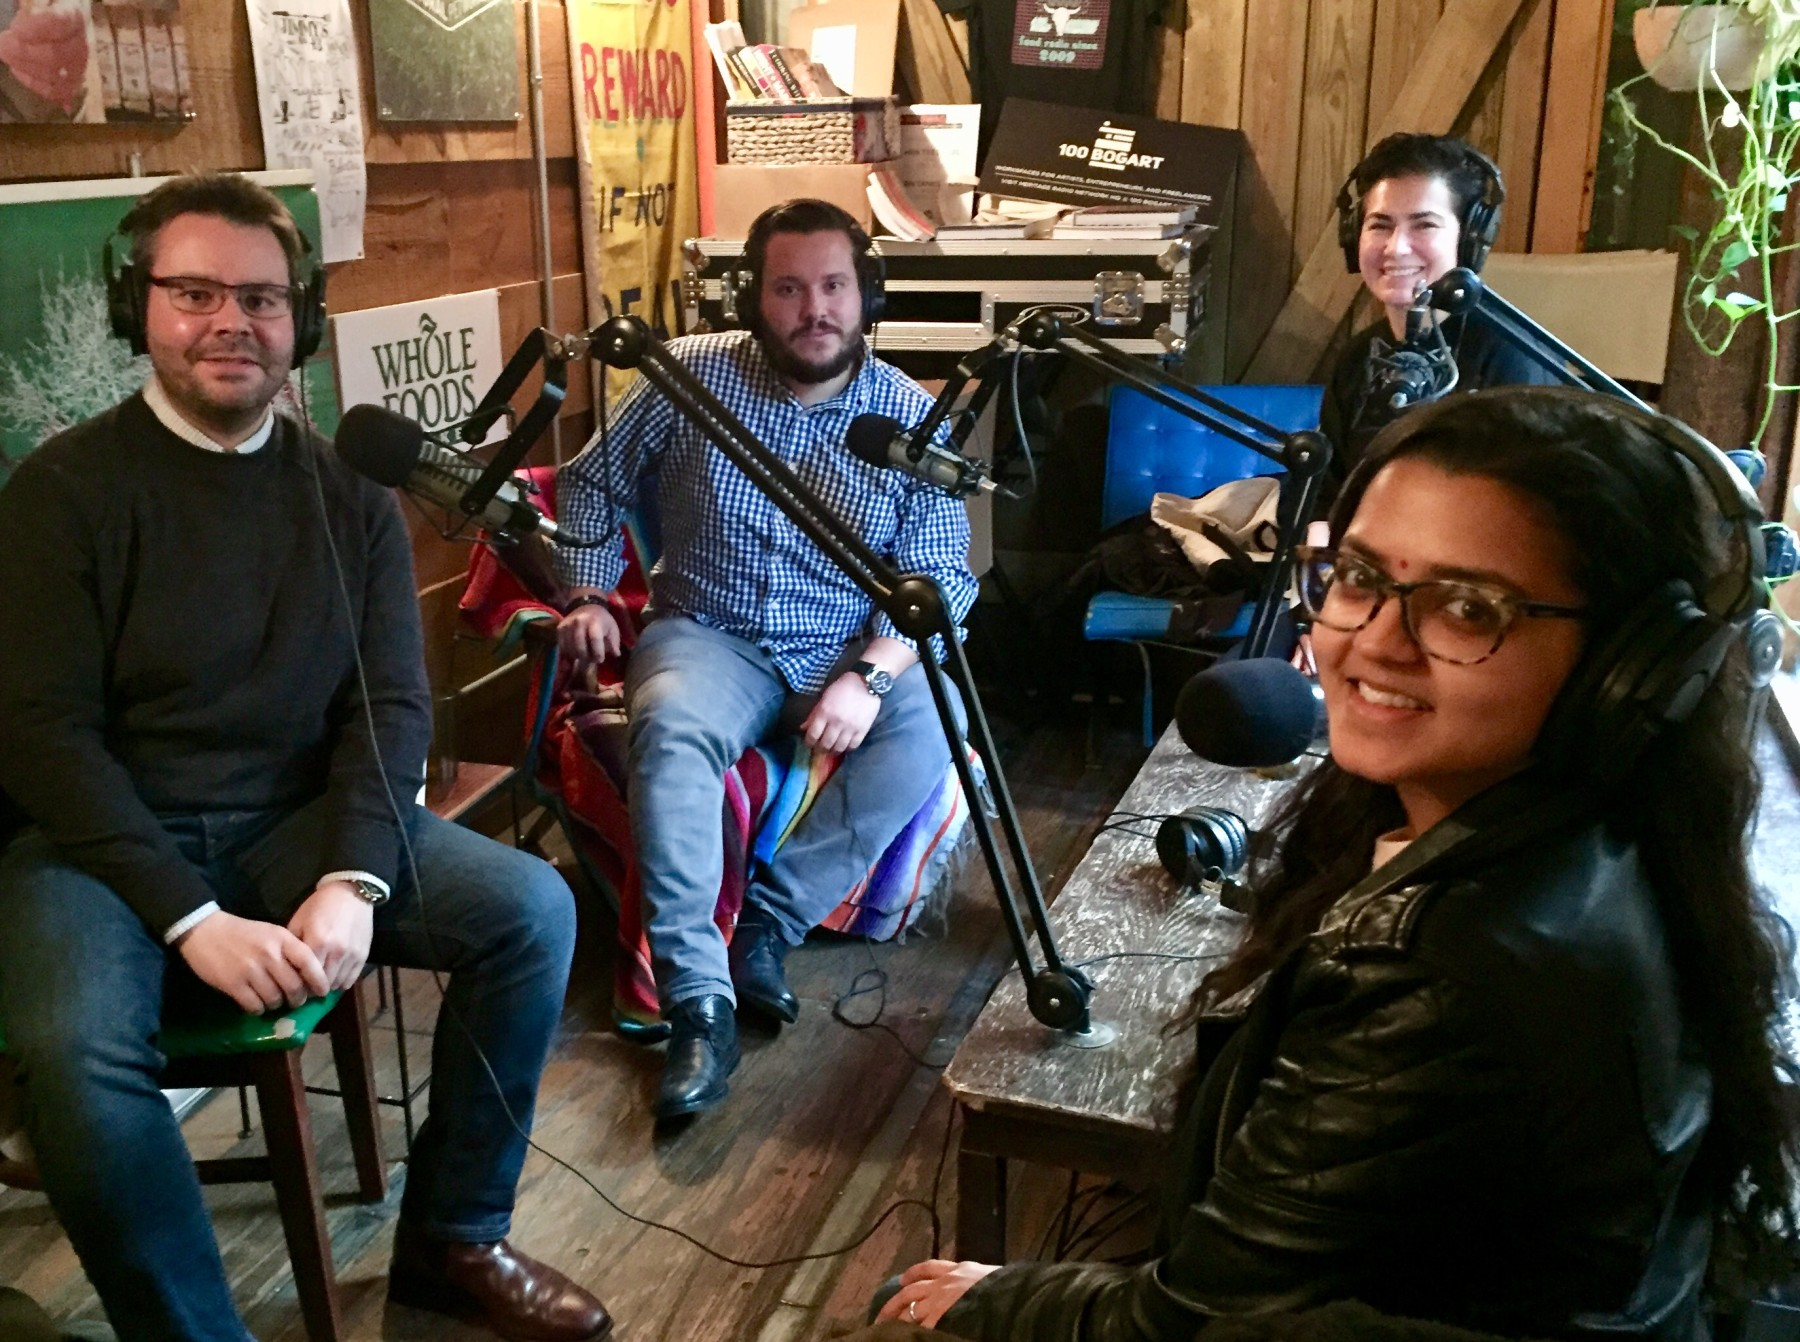 Tech Bites Podcast-    EPISODE 121 2017 YEAR IN REVIEW: THE GOOD, THE BAD AND THE APP    The penultimate episode of 2017 is a look back at the tumultuous year that was. Joining us in-studio are three founders of restaurant tech businesses who share their stories, industry observations and favorites apps 2017. Deepti Sharma, Food to Eat founder and CEO from Episode 99 Women in Food Tech CEOs. Bradley Scott, Etch co-founder from Episode 109 Restaurant Recommendation Apps. Xavier Mariezcurrena, ChouxBox co-Founder and CEO from episode 94 Free Tax Advice with ChouxBox.